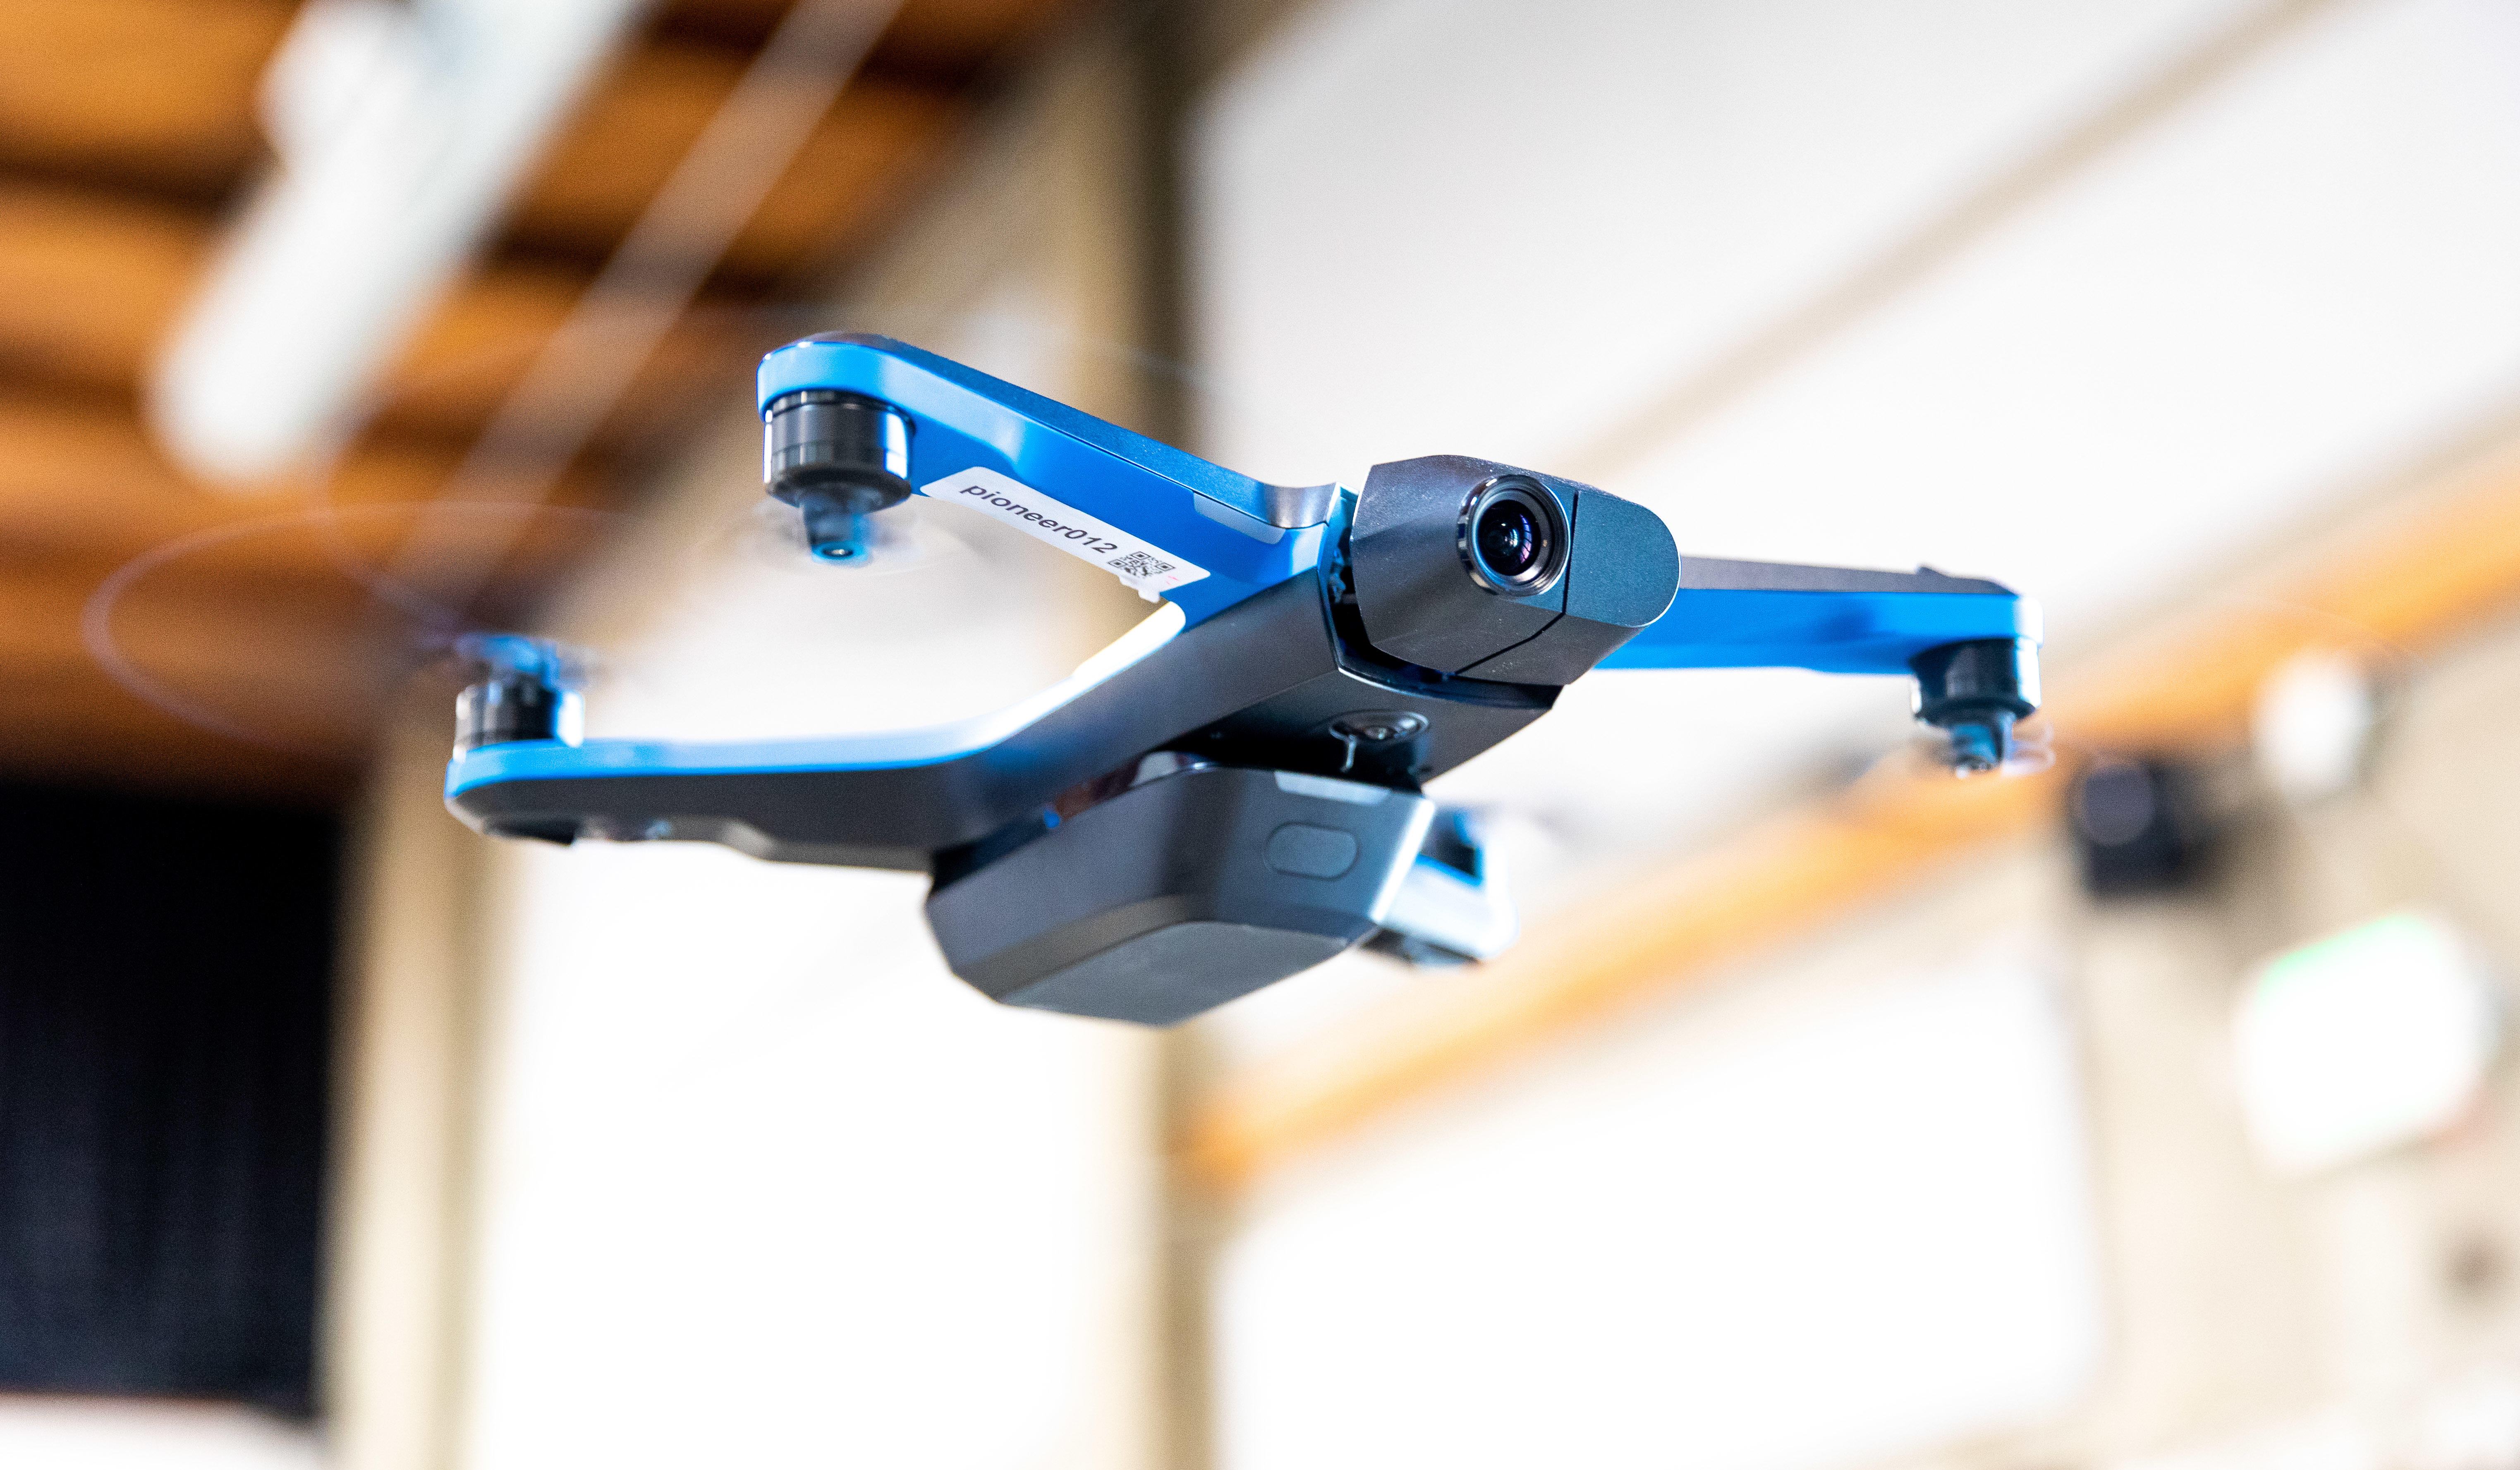 The 1,000 Skydio 2 drone has four propellers, six navigation cameras, a belly-mounted removable camera and a 4K main camera to shoot video.